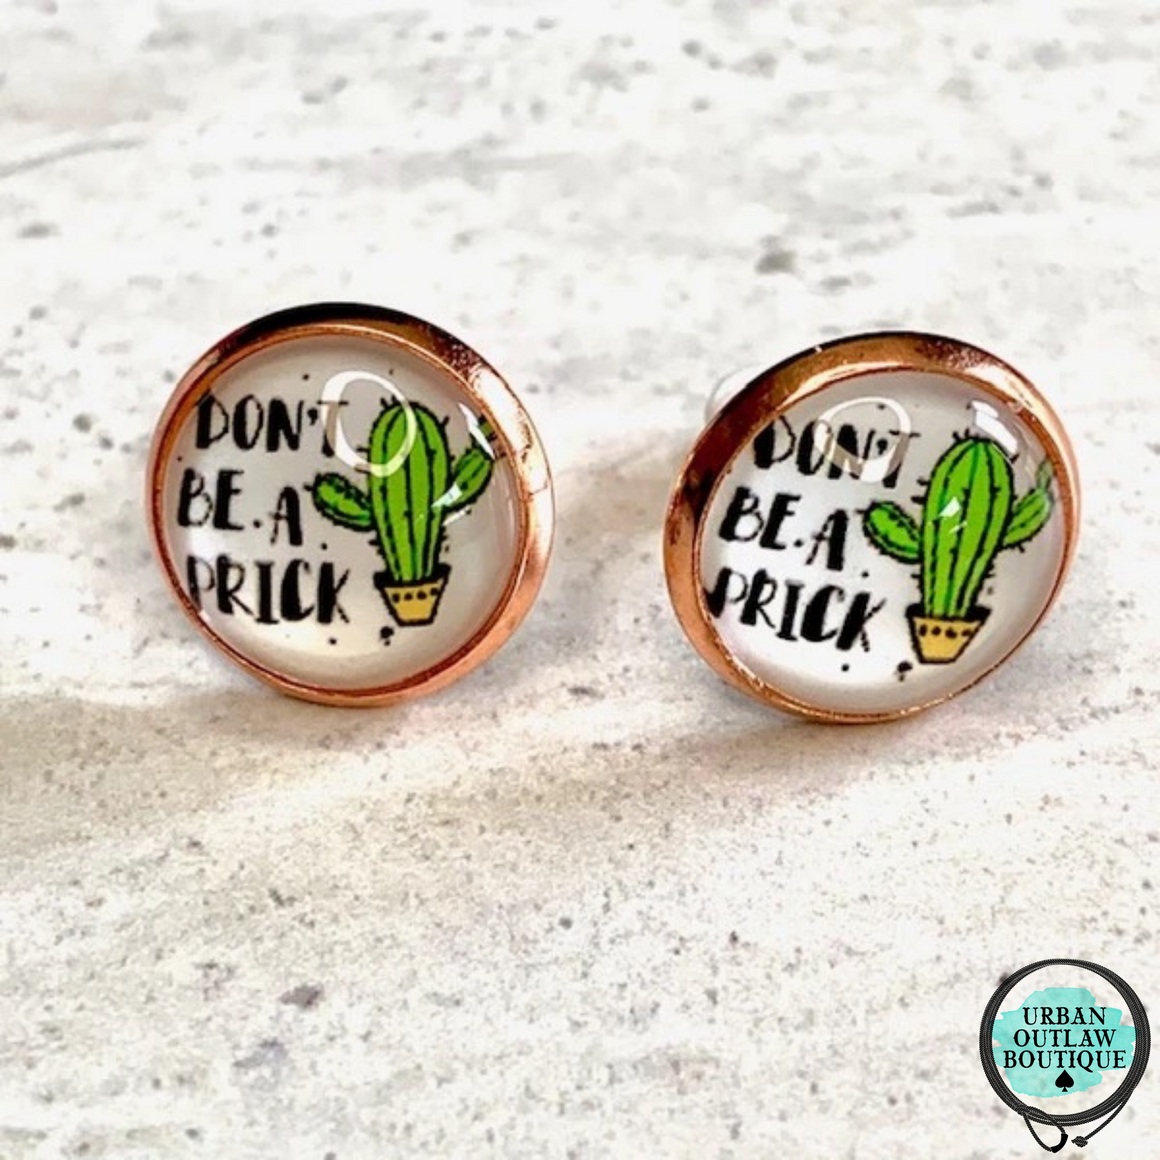 Don't Get Prickly Earrings - Urban Outlaw Boutique